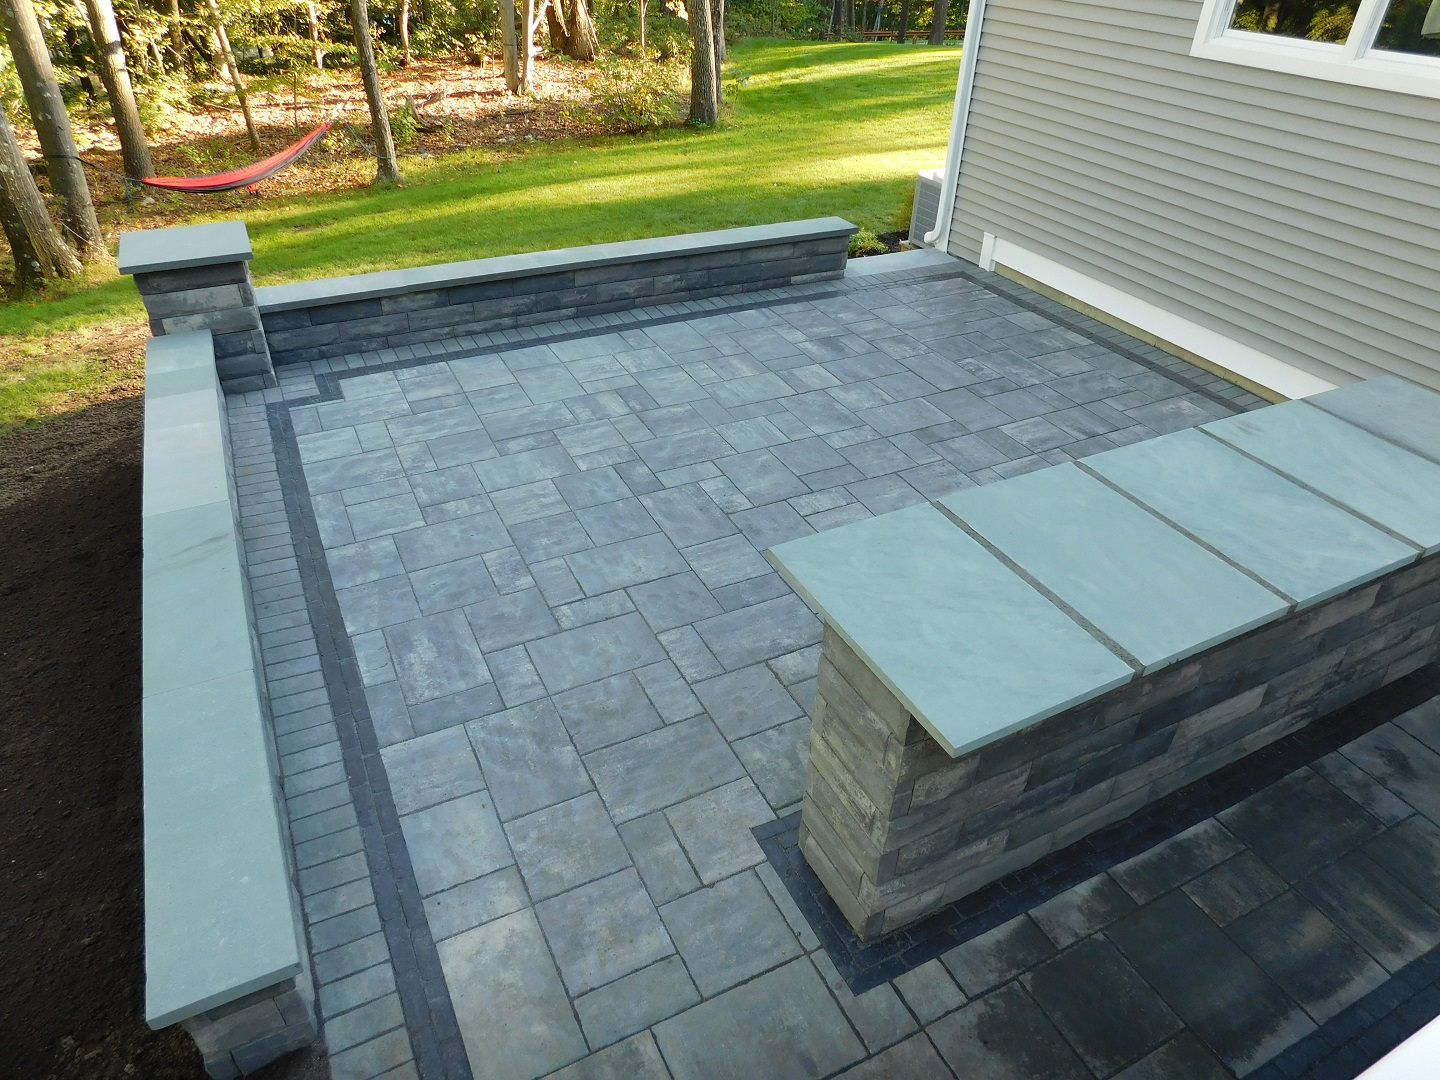 Brick and patio pavers in Newington, CT